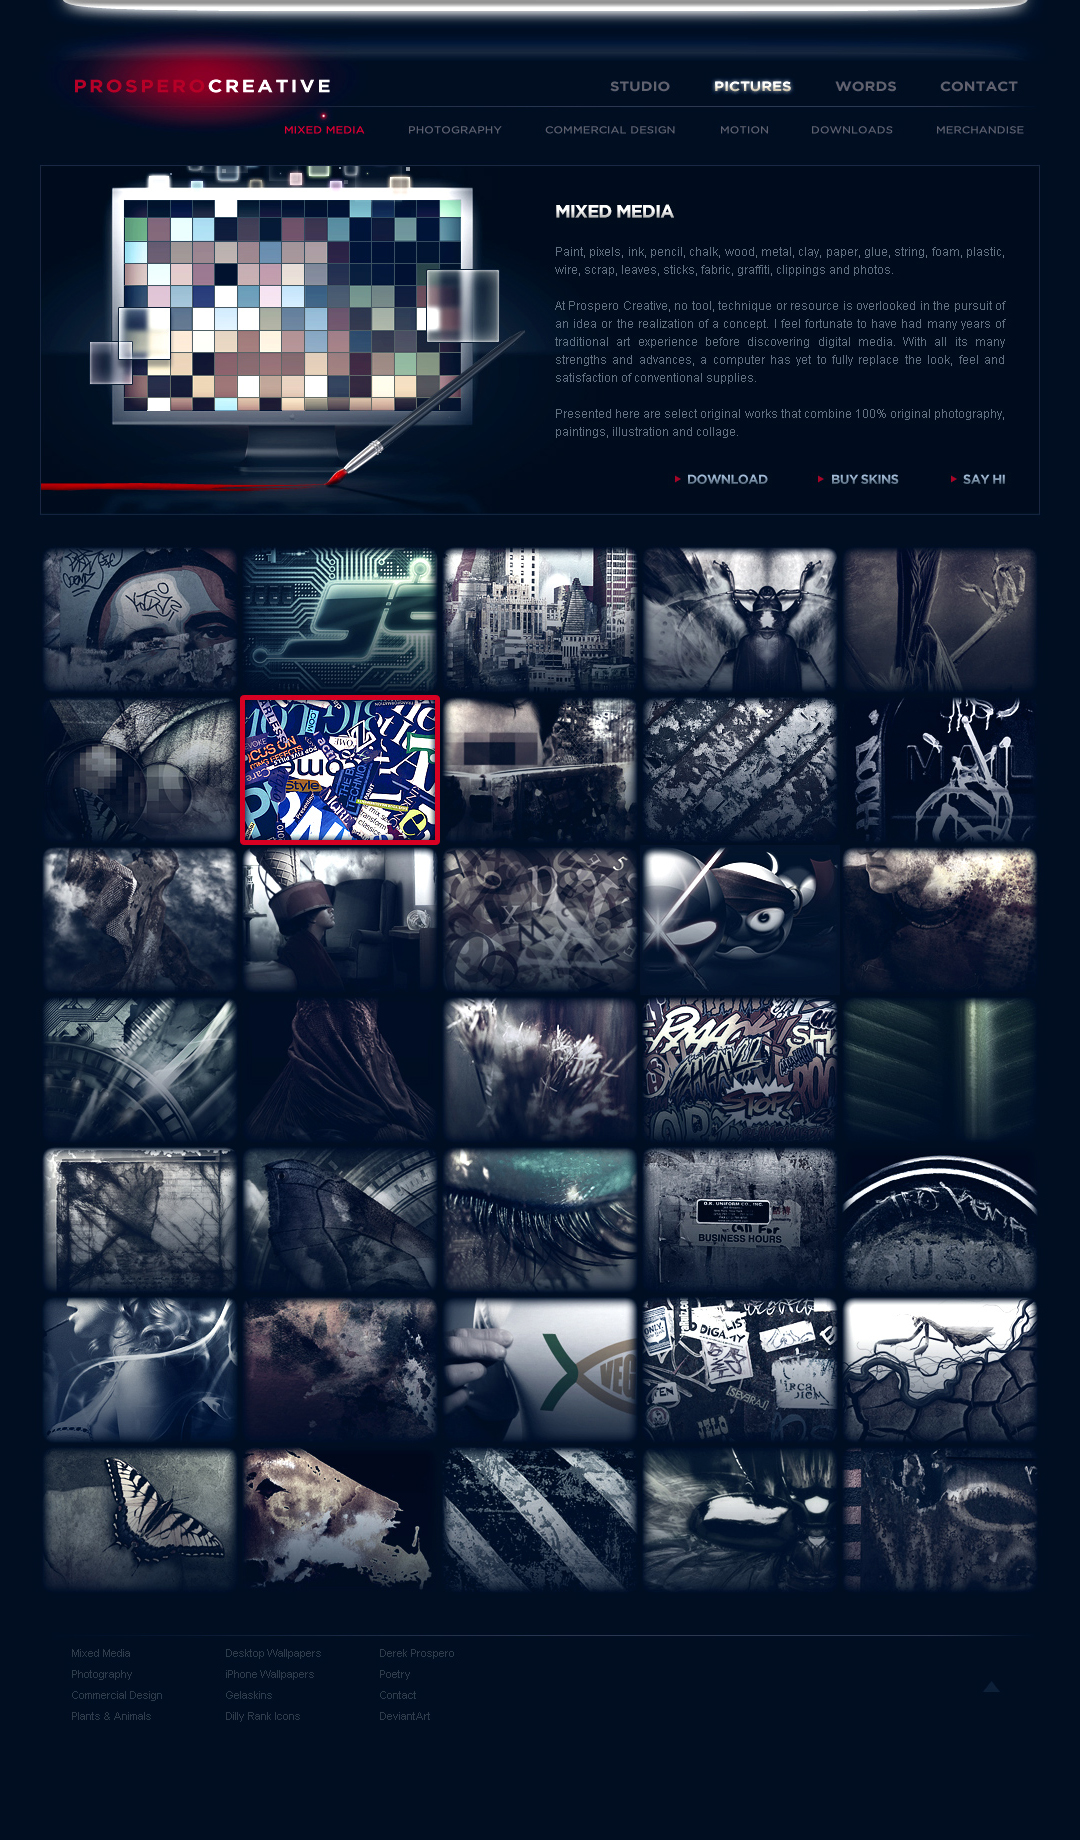 NOCTURNAL - The visual goal was to create a night time aesthetic, reflected in the dark navy overtone. The muted palette was completely absent of true black, eliciting a soft, hazy feel. These satin hues provided strong contrast against the bright neon hover states of links and images.